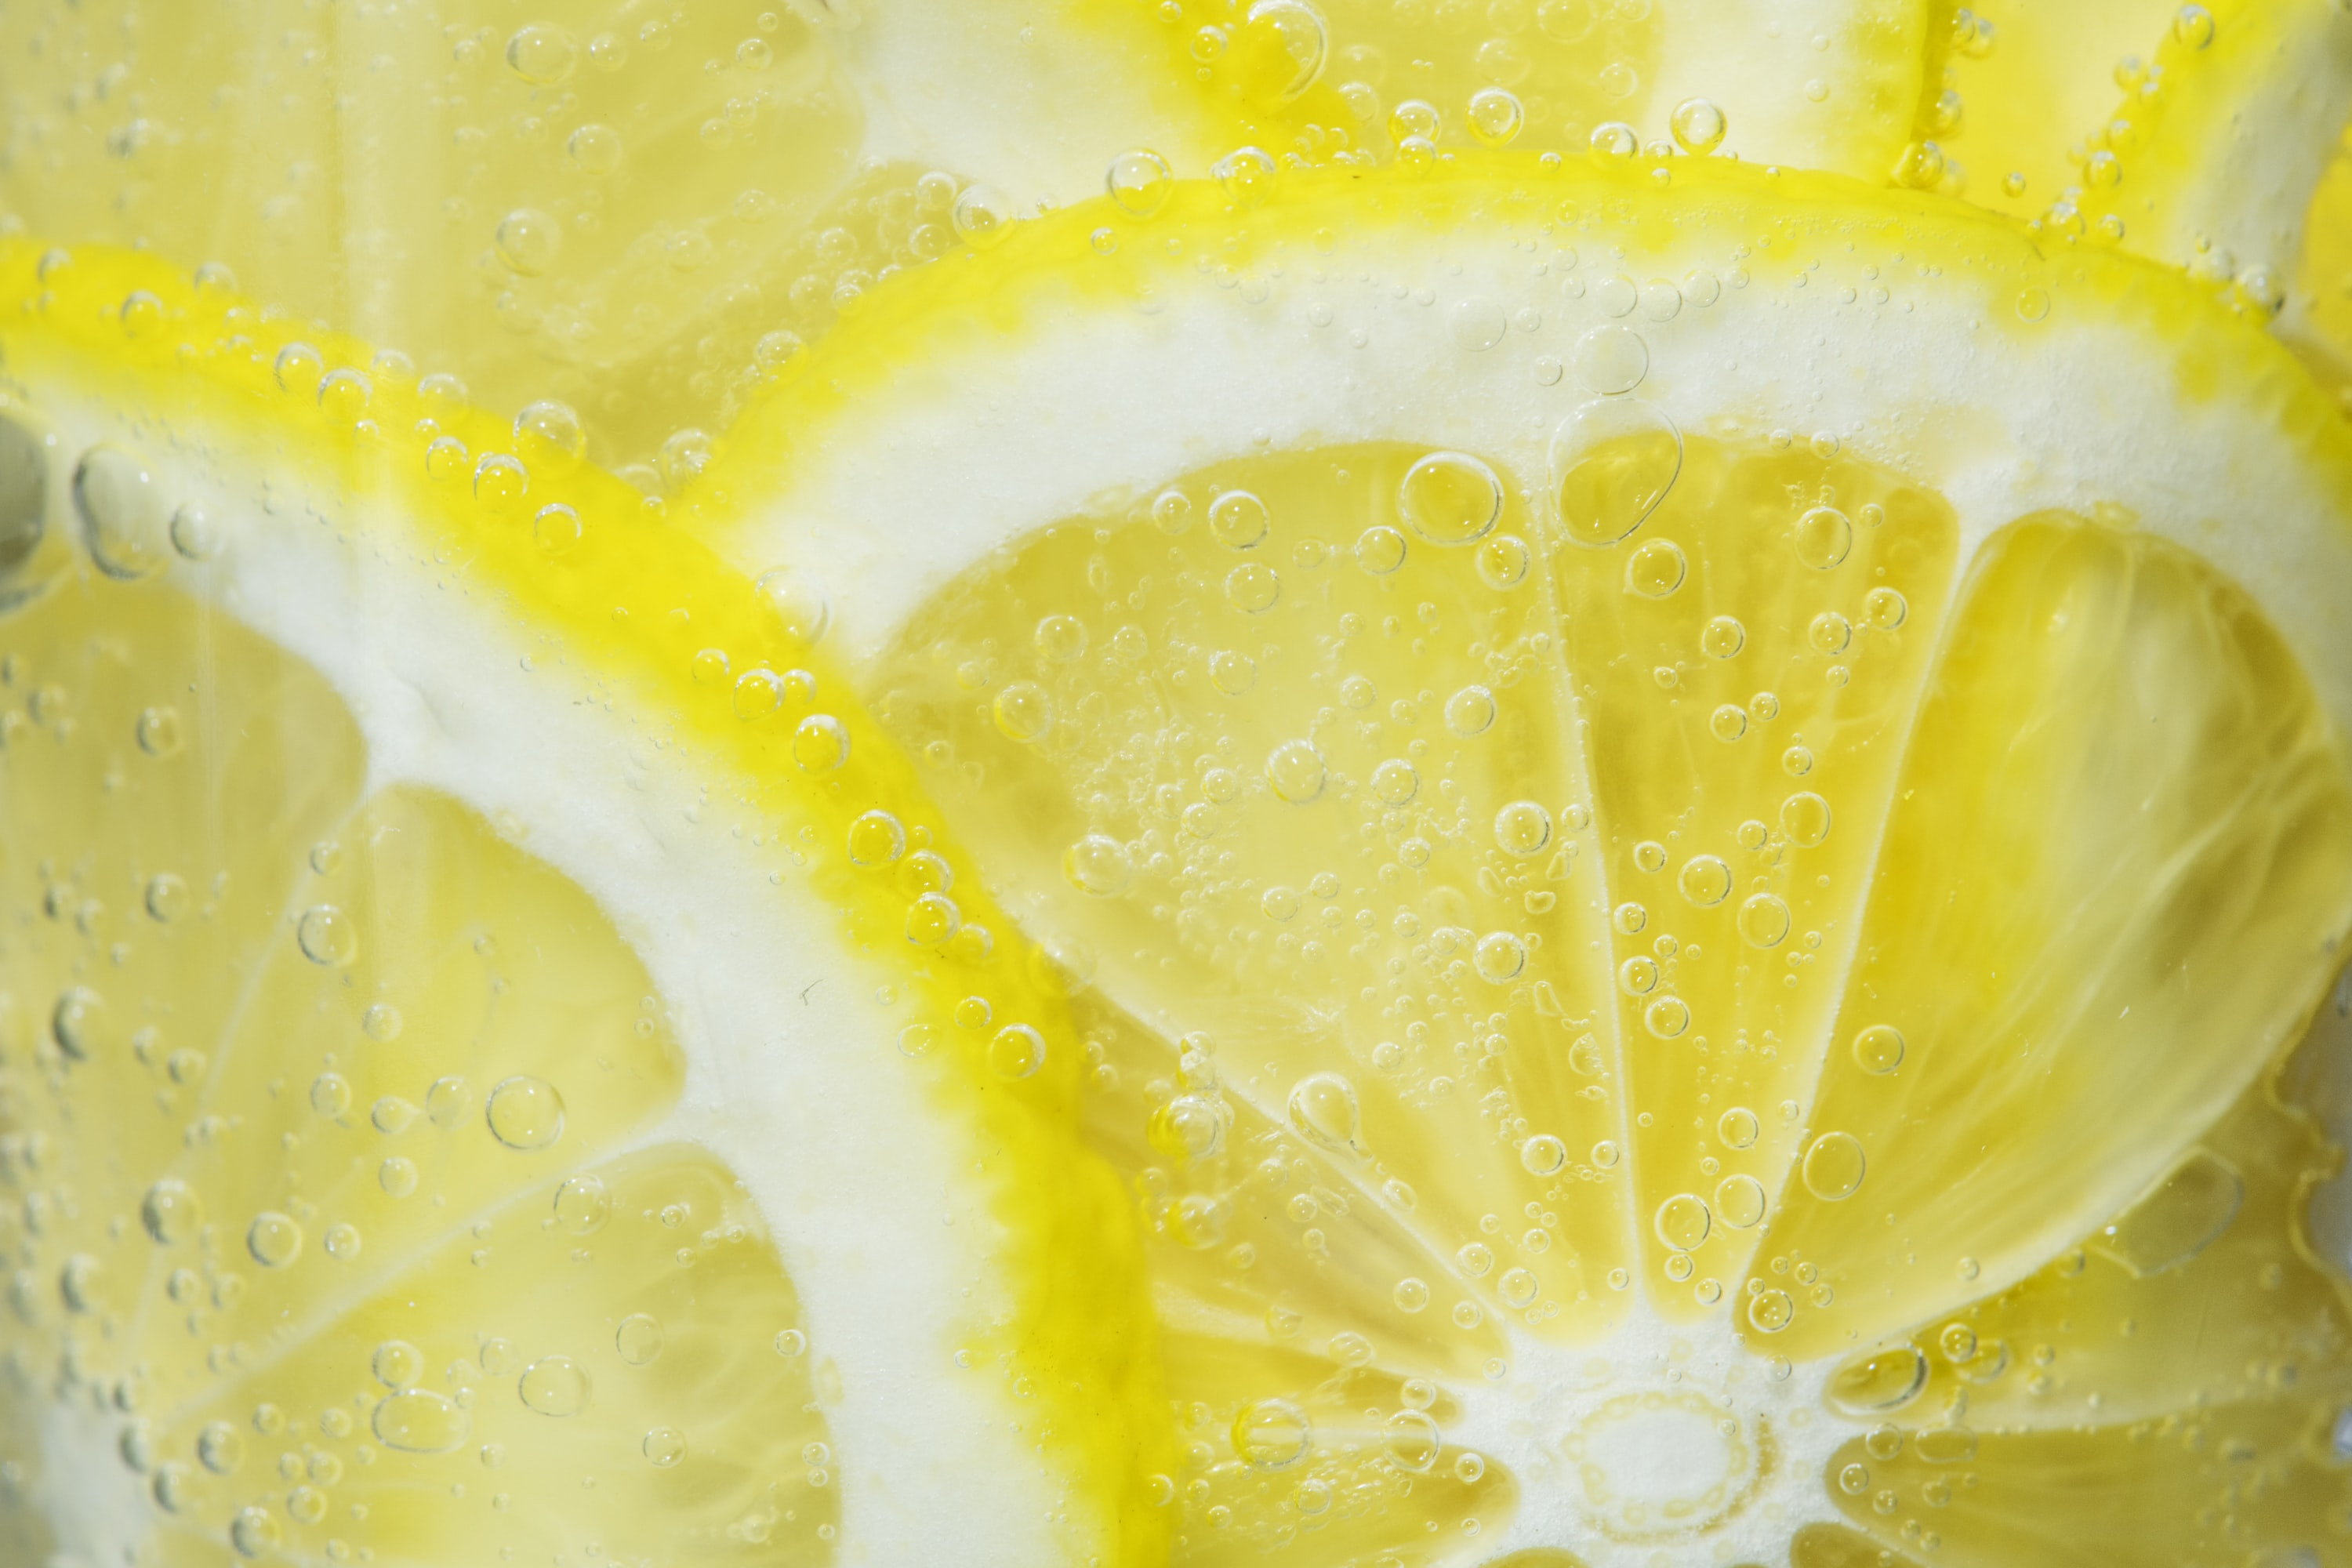 close view of lemon slices in glass